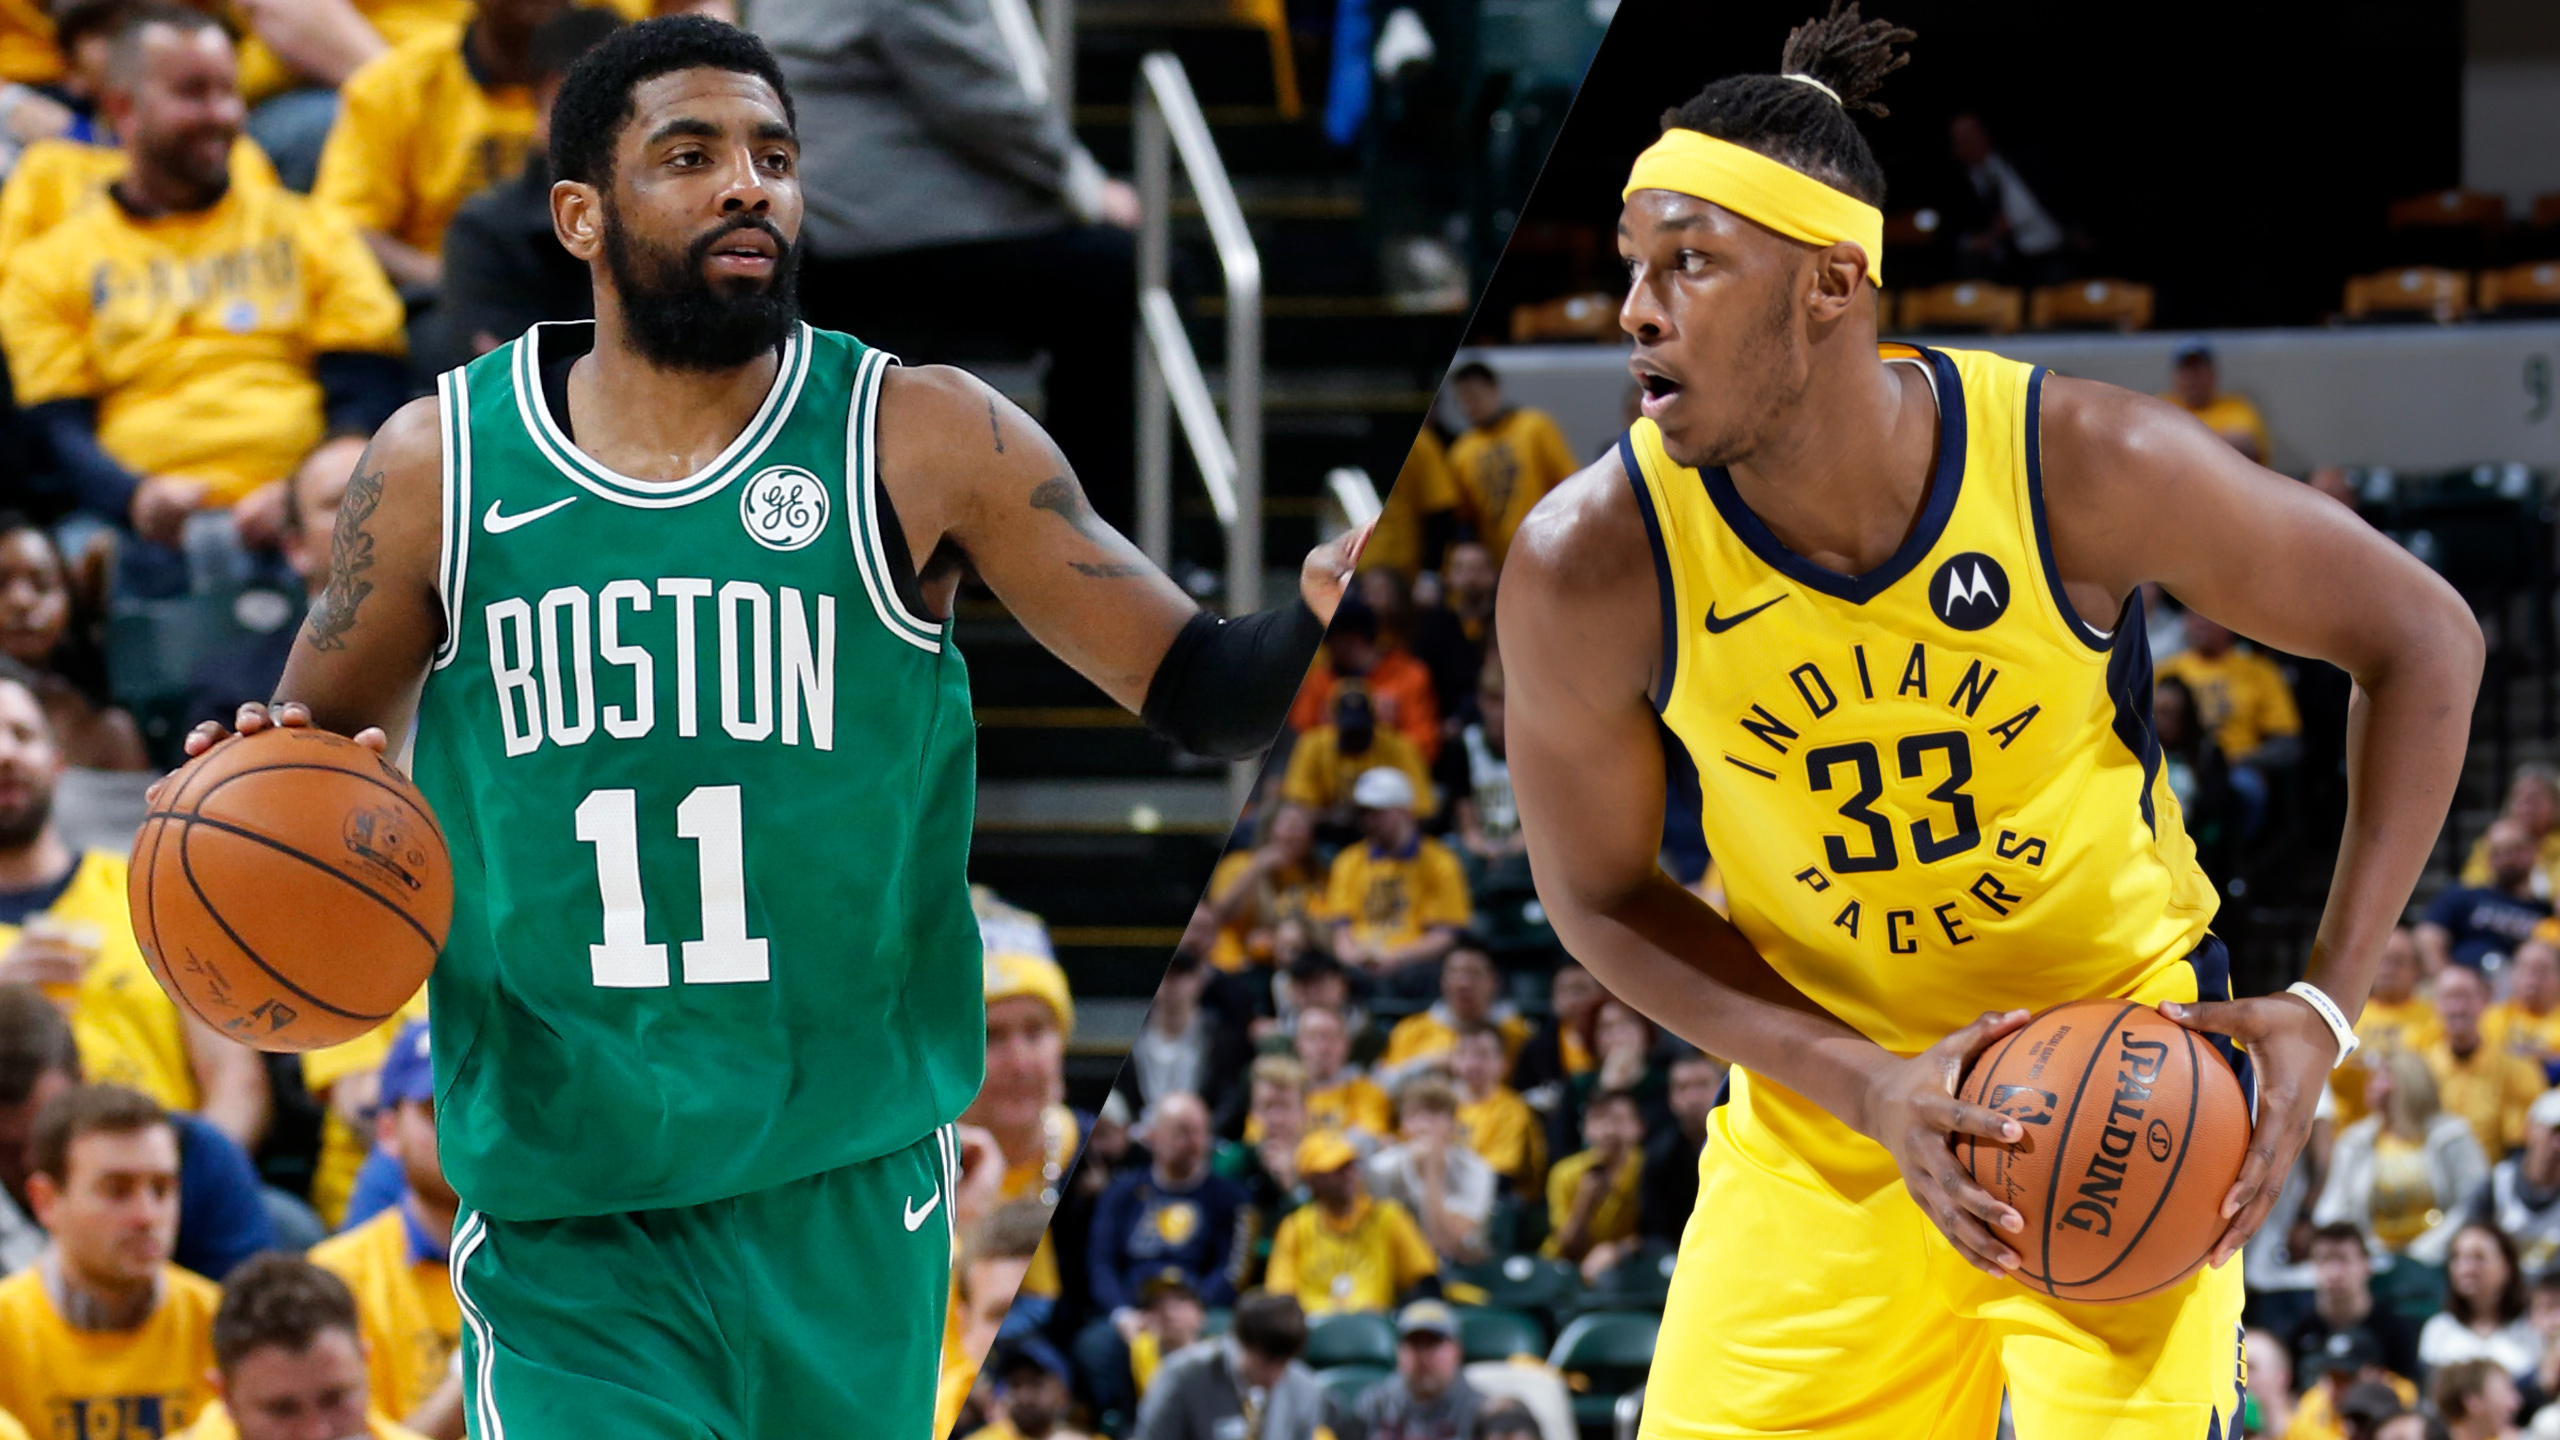 Boston Celtics vs. Indiana Pacers (First Round, Game 4) (re-air)